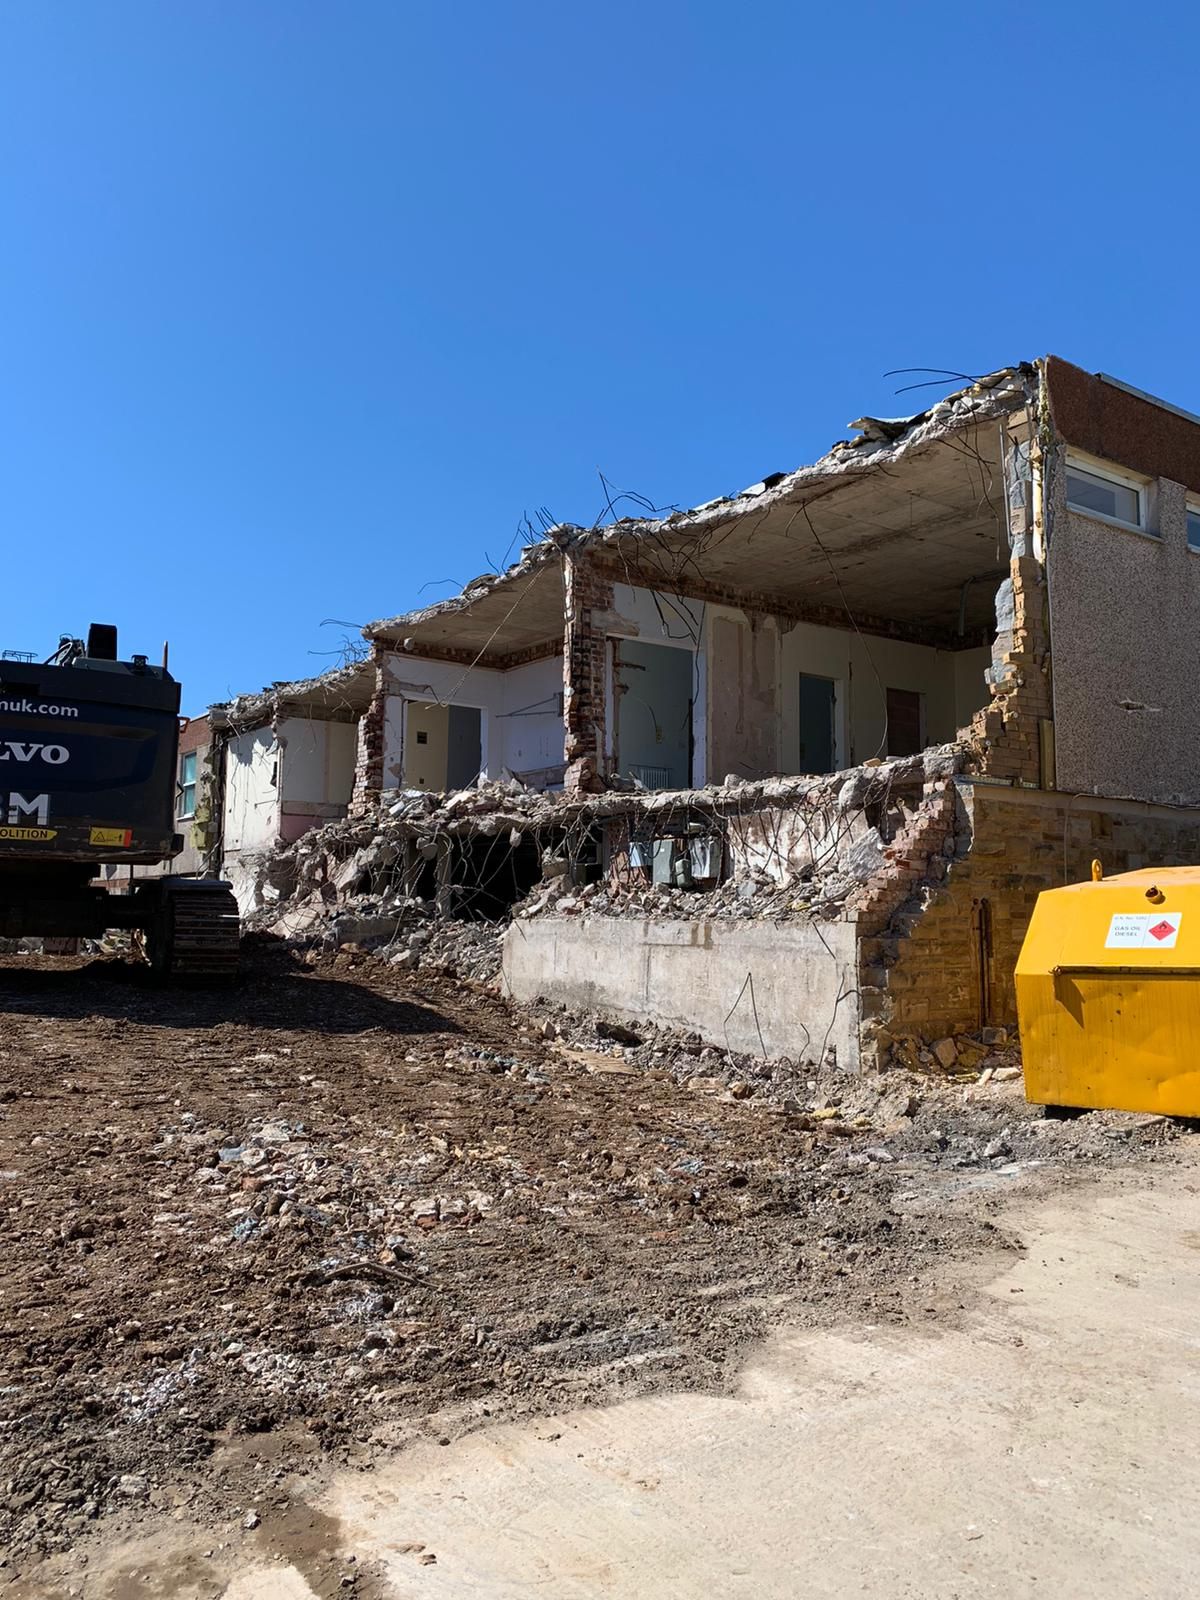 Demolition work continues at Whitehaven